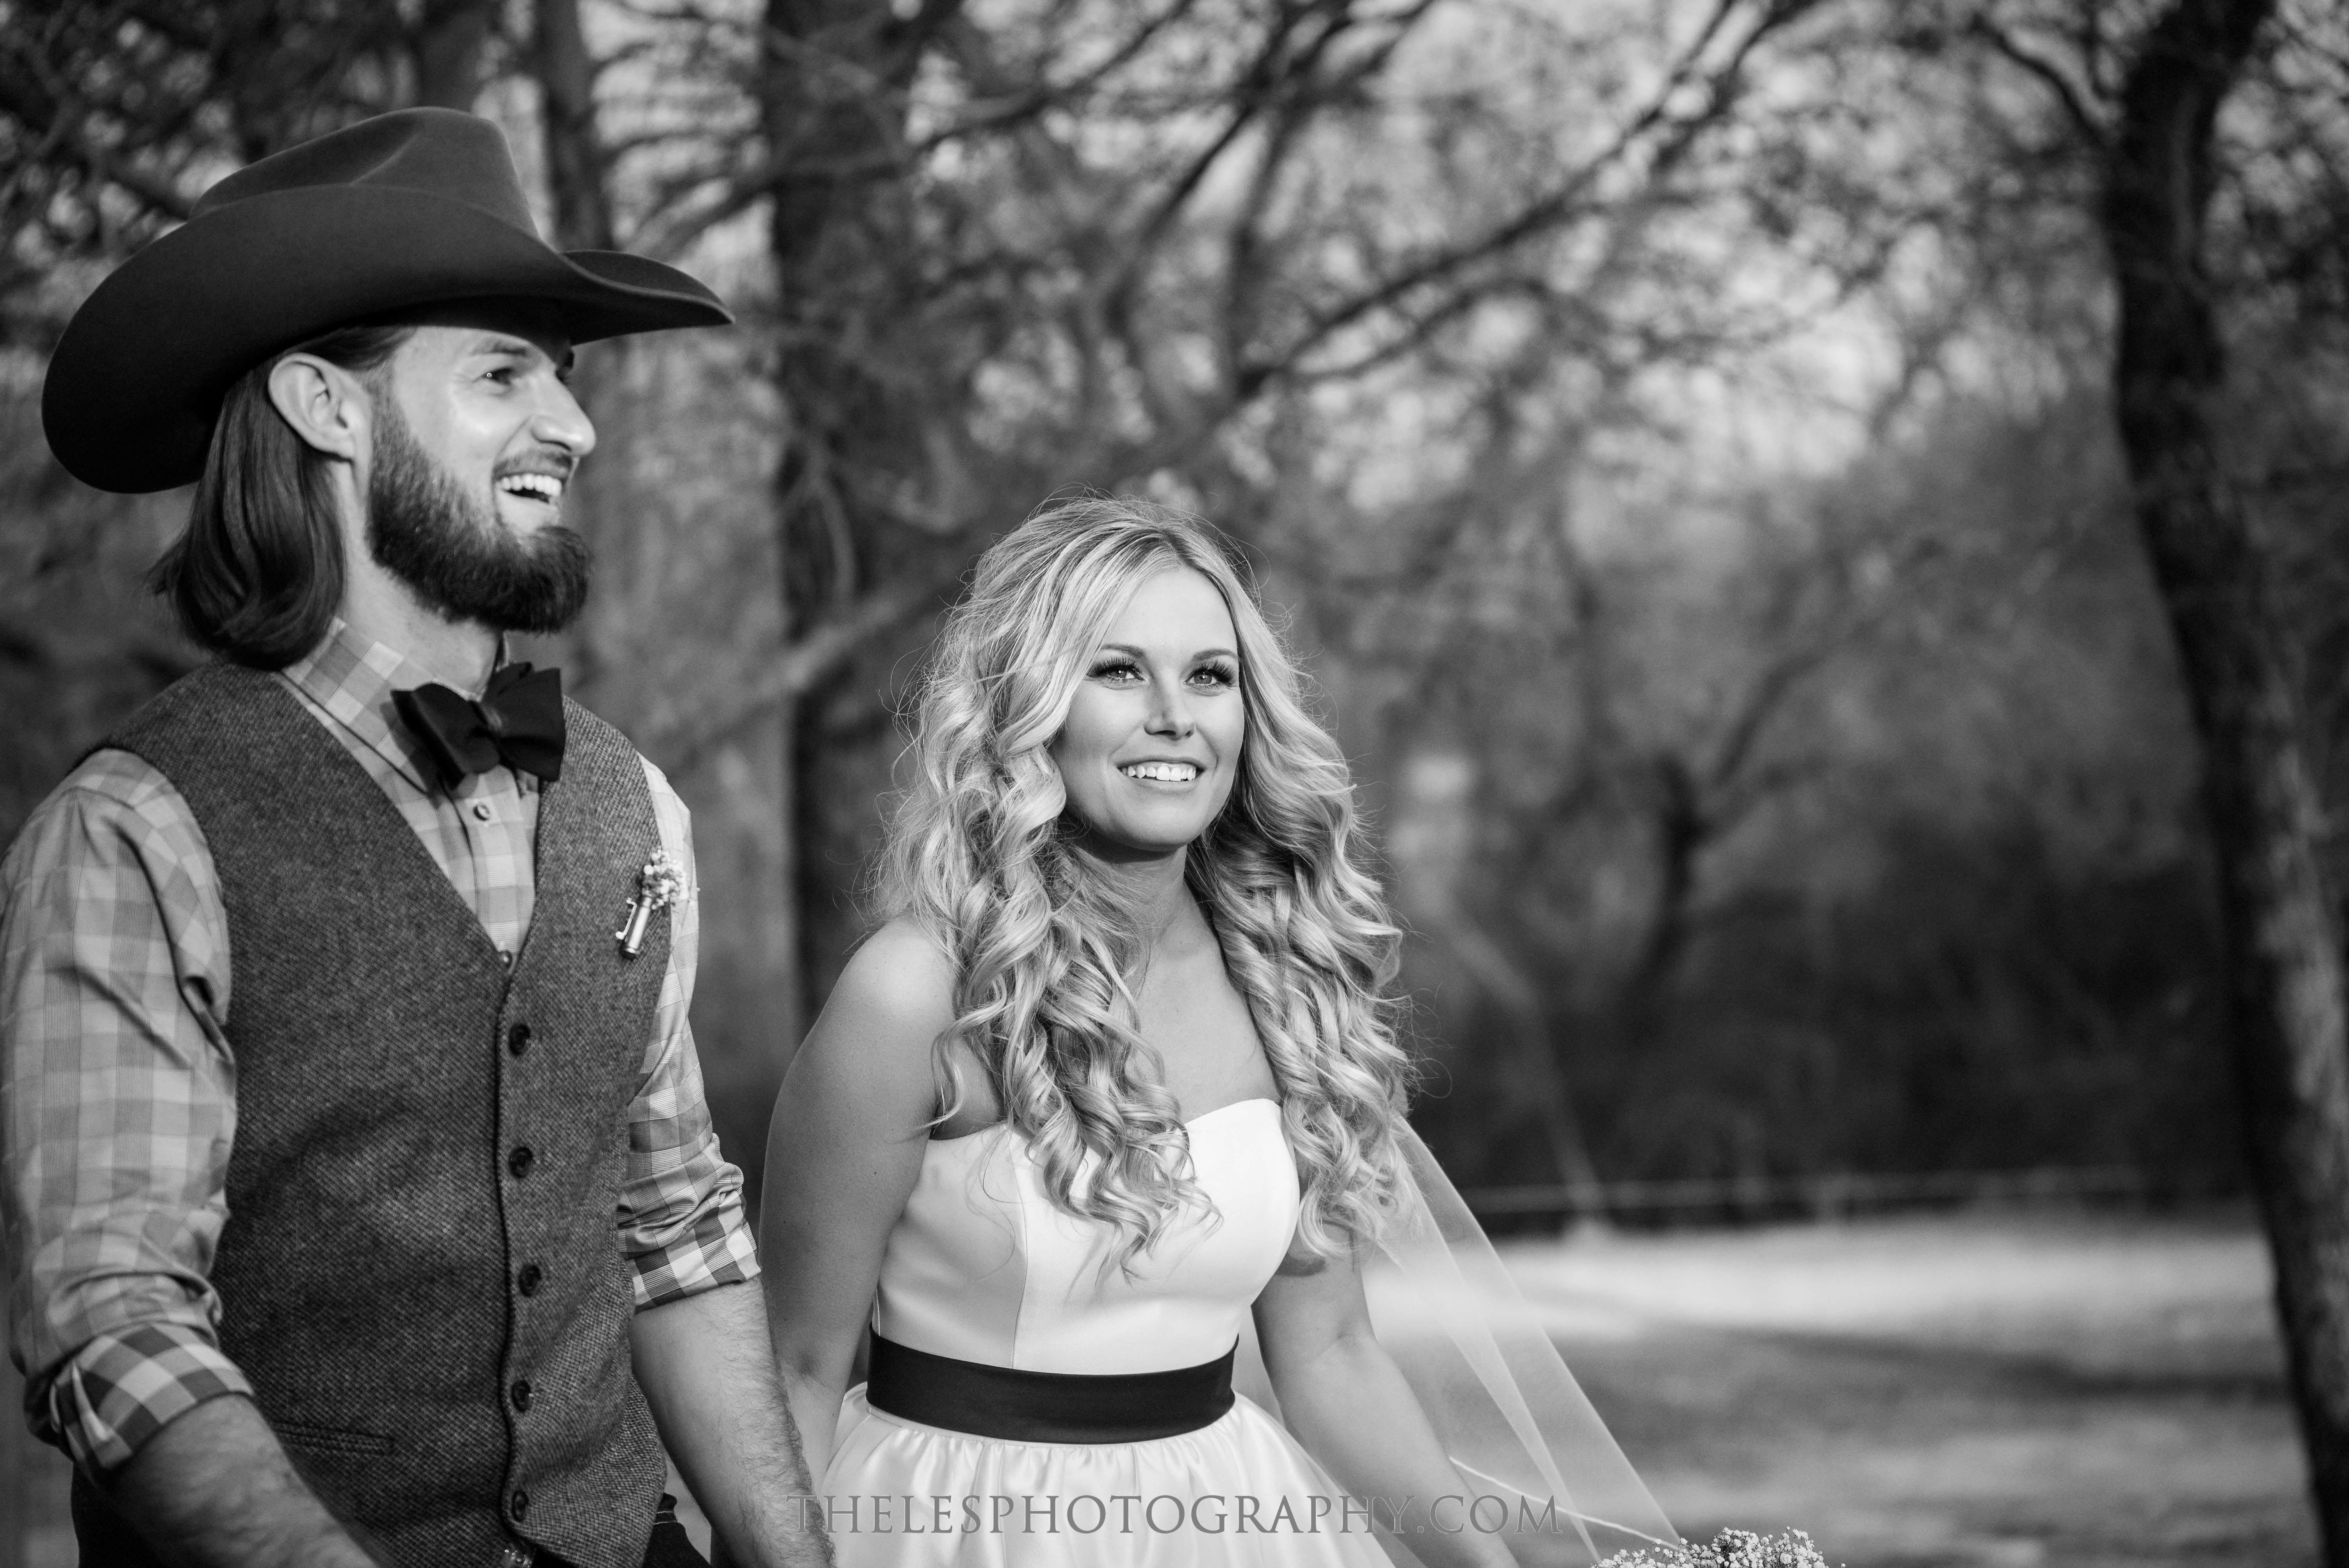 092 Dallas Wedding Photography - Photographer - The Les Photography - Fort Country Memories Wedding